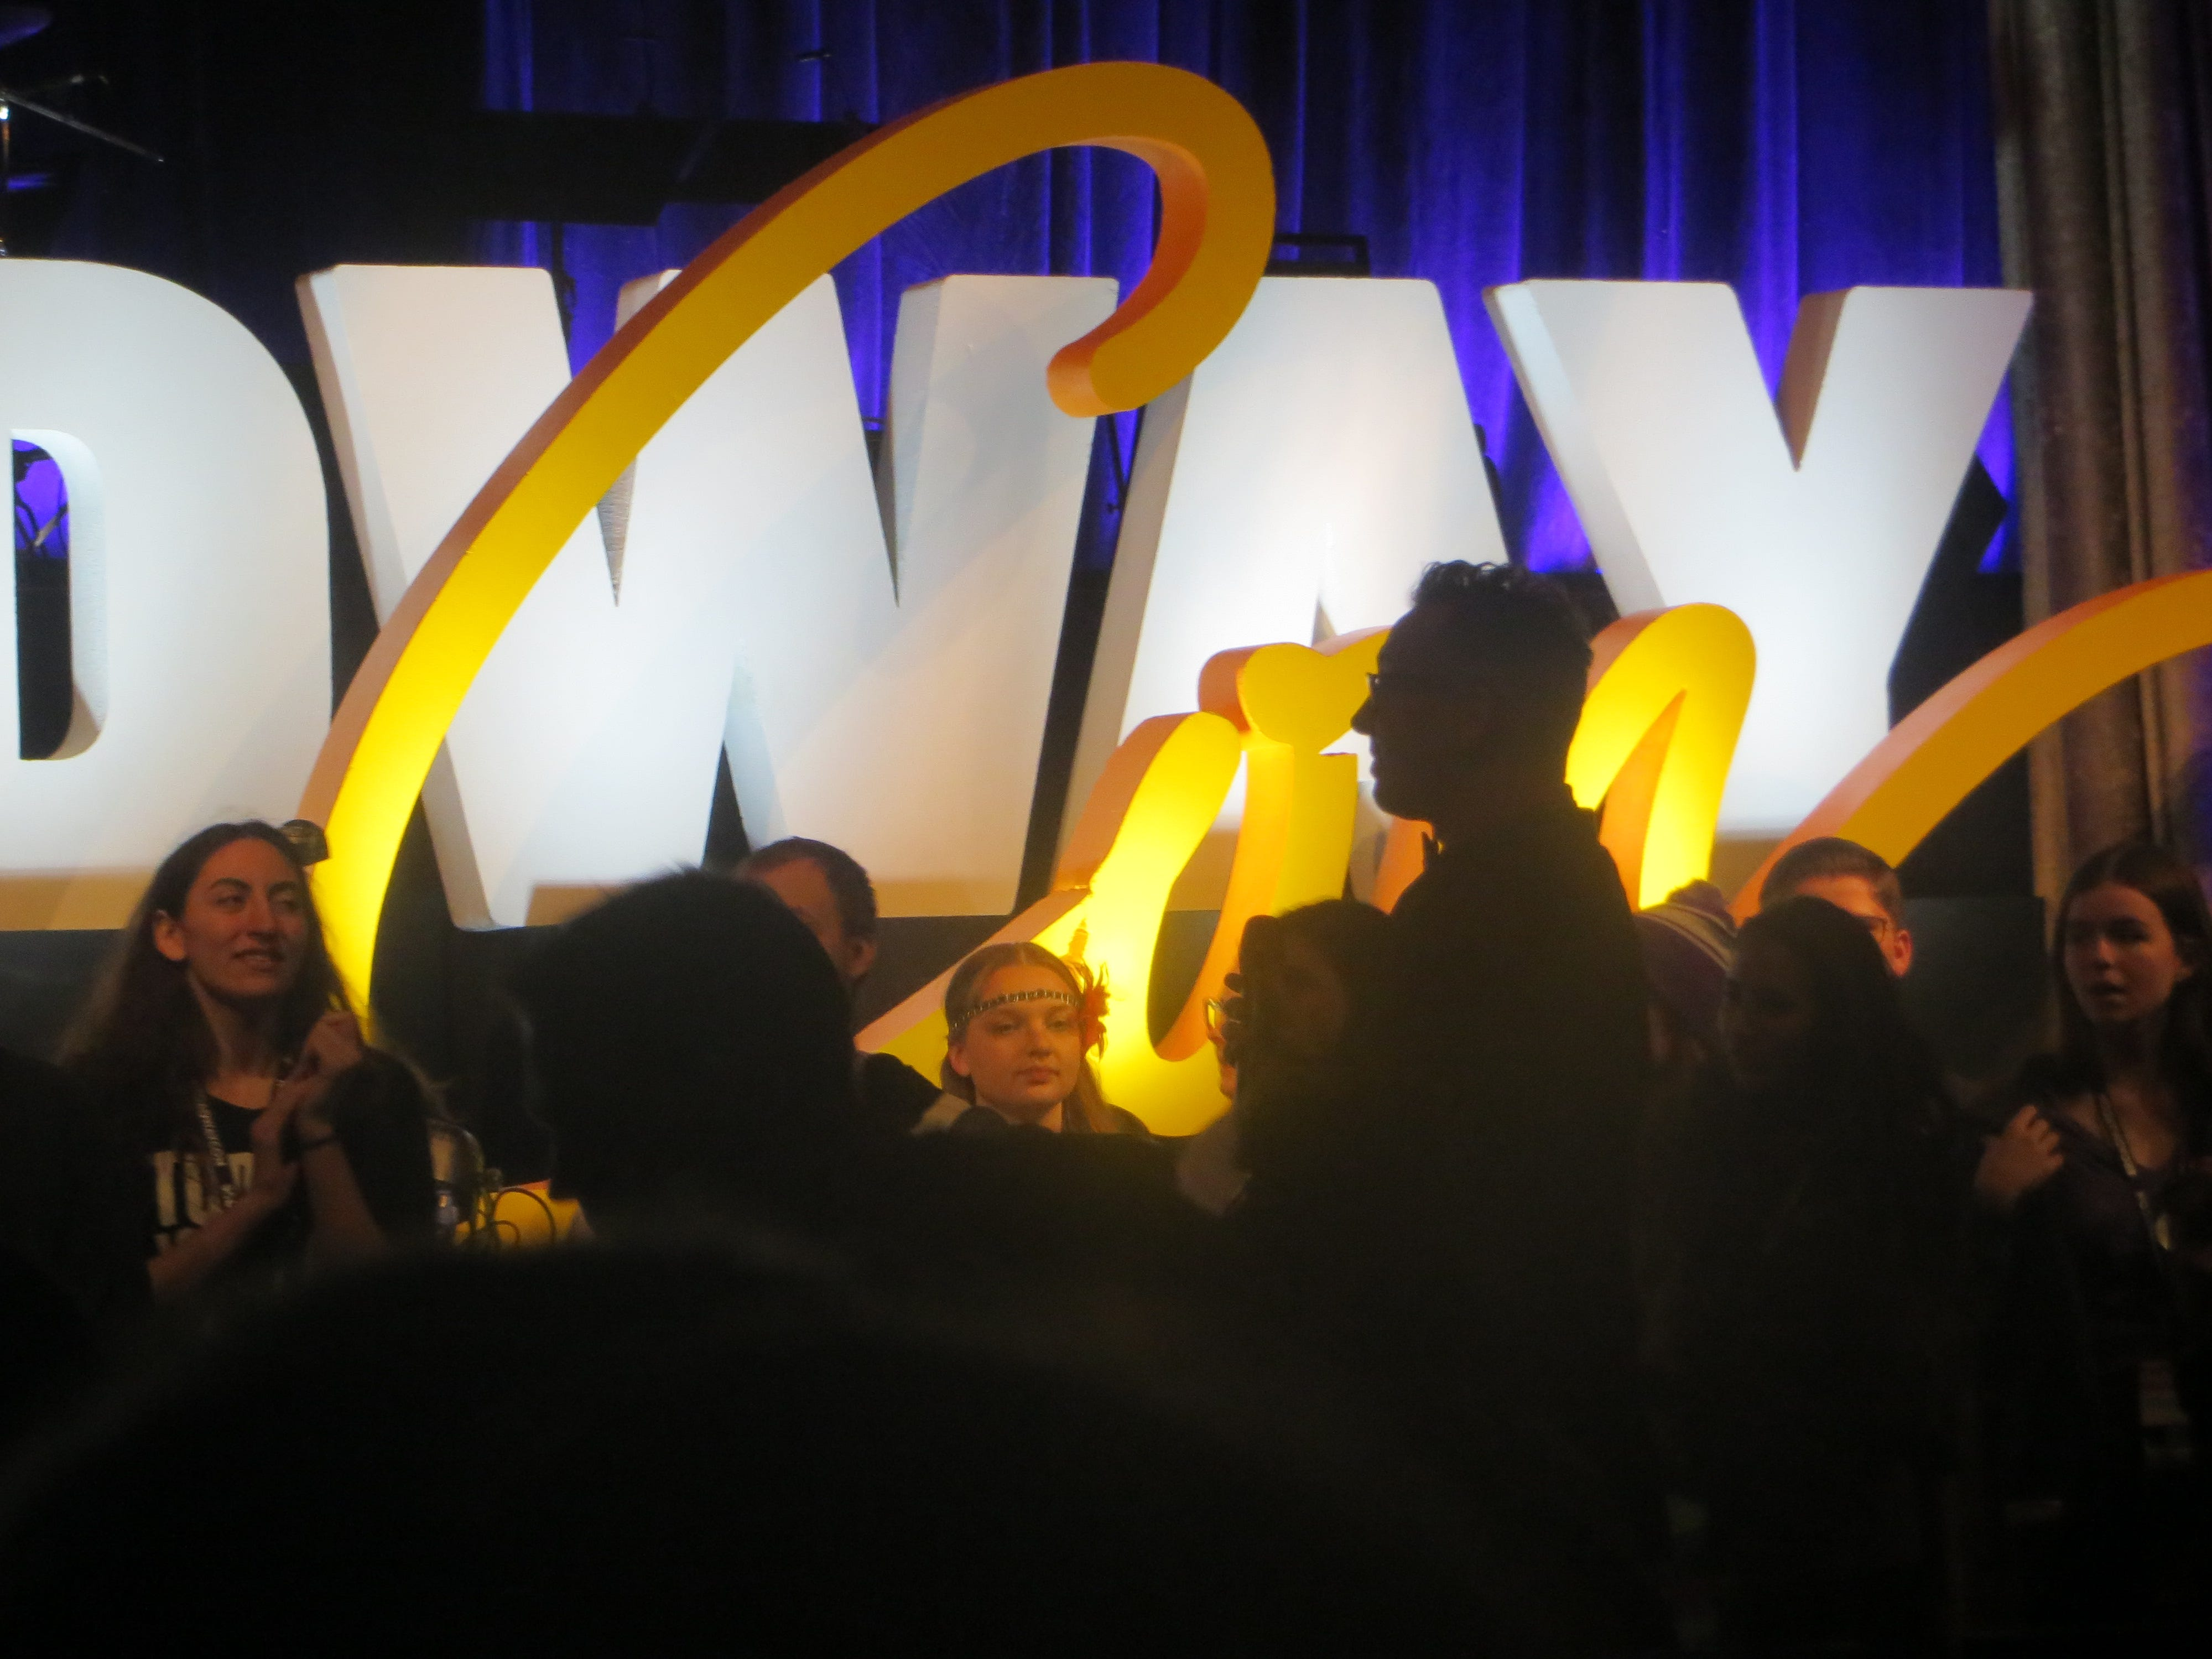 BroadwayCon 2019, held Jan. 11 to 13, 2019, at the New York Hilton Midtown in Manhattan.